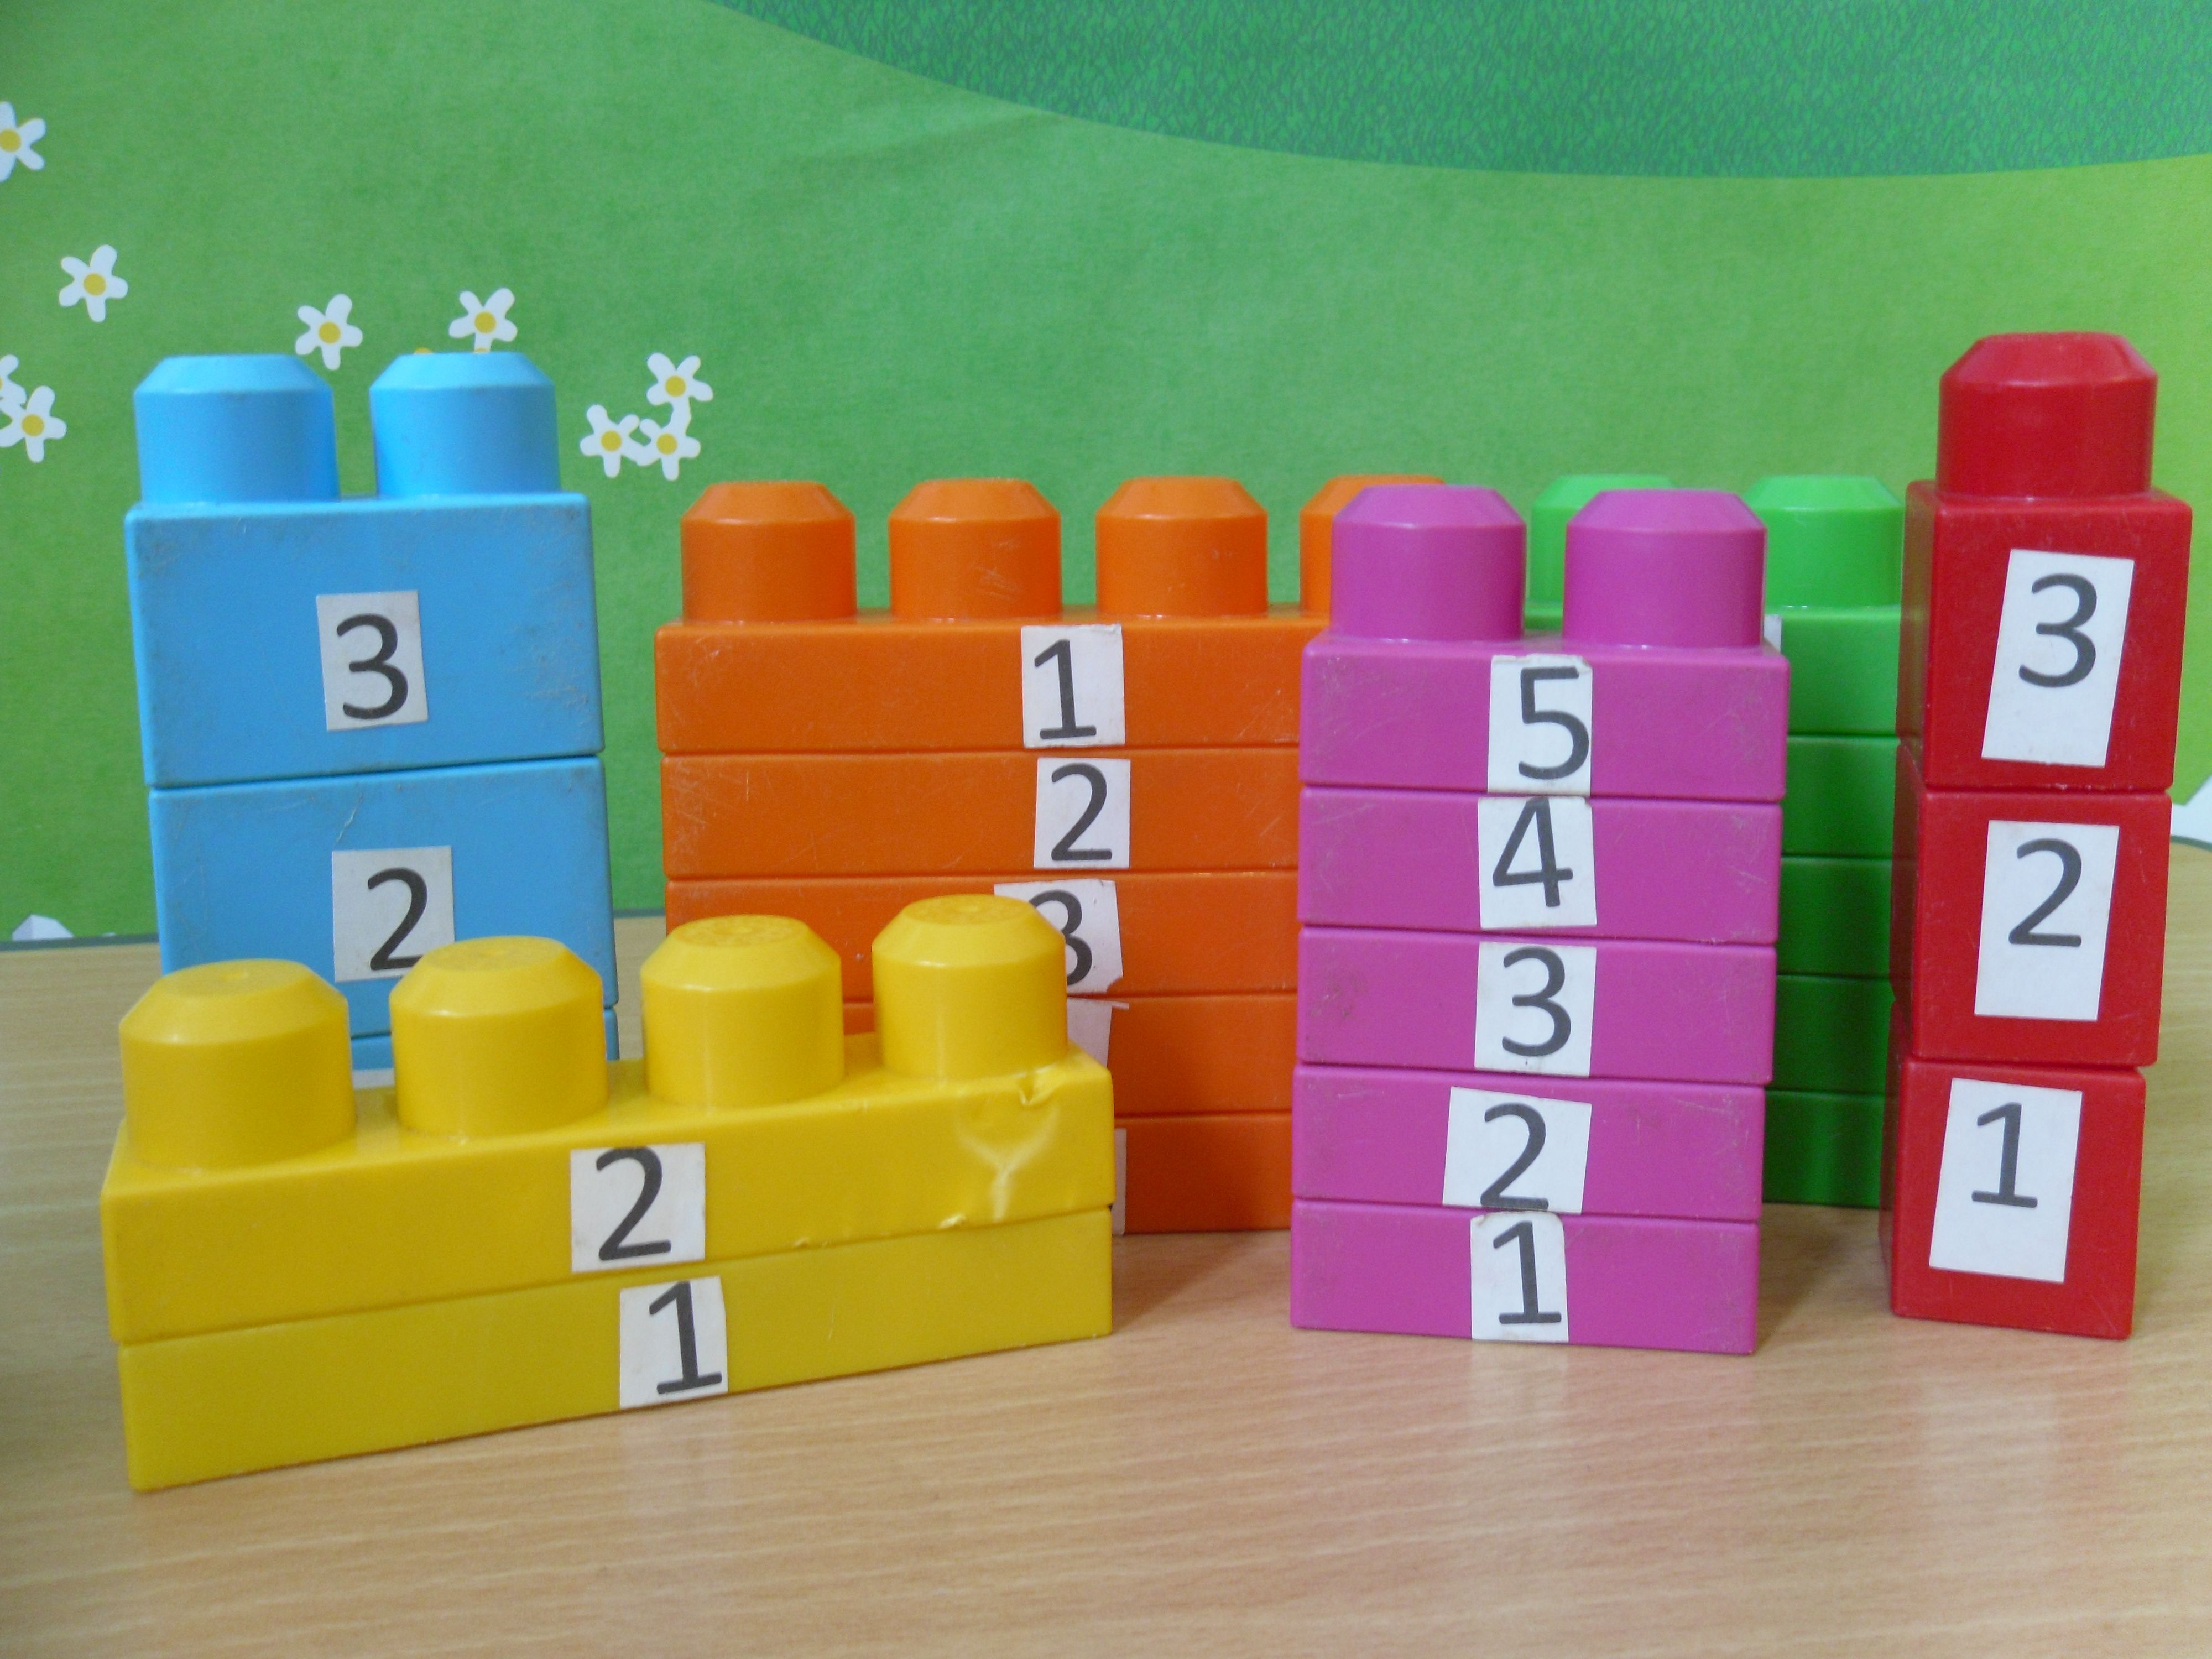 Recognising And Ordering Numbers